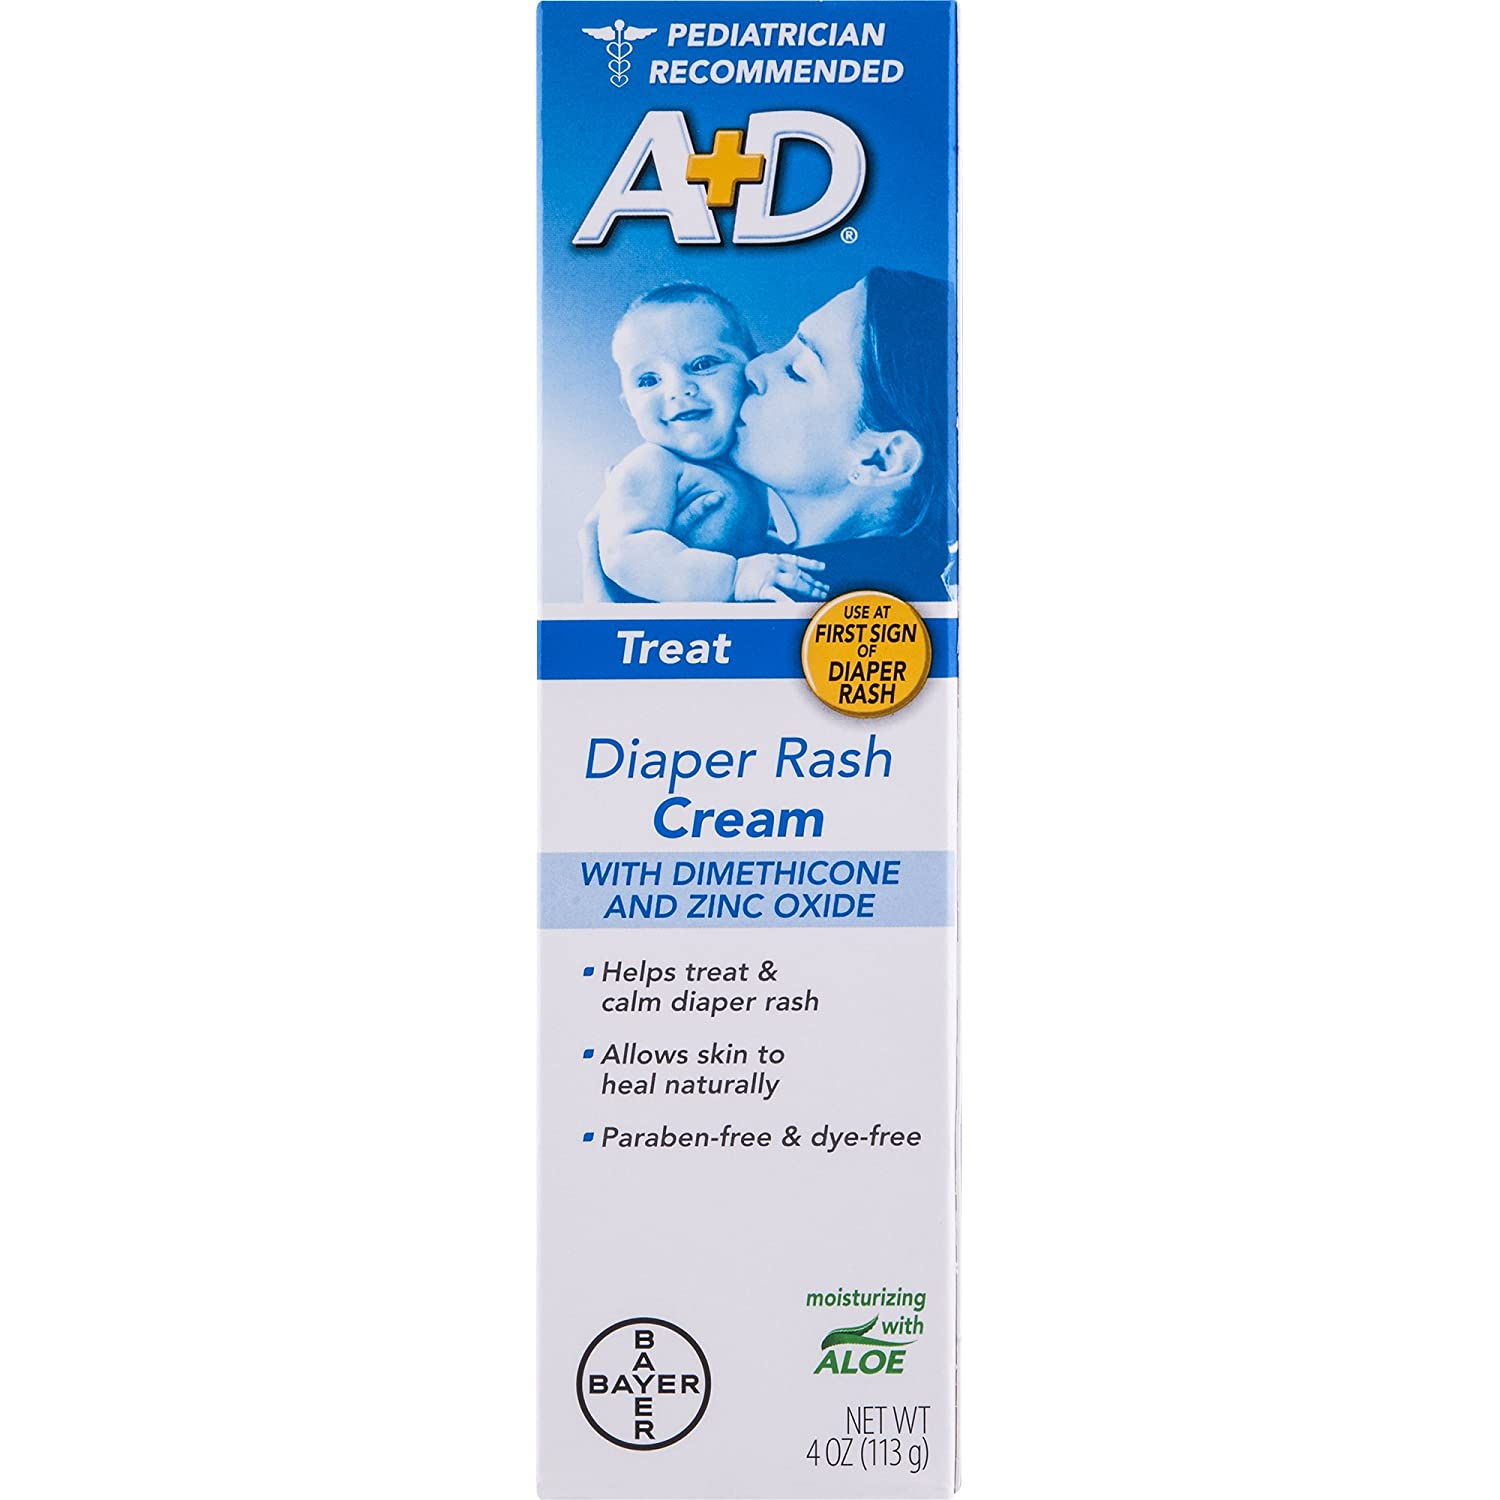 A+D Zinc Oxide Diaper Rash Treatment Cream, Dimenthicone 1%, Zinc Oxide 10%, Easy Spreading Baby Skin Care, 4 Ounce Tube Bayer - Berocca 41100811325